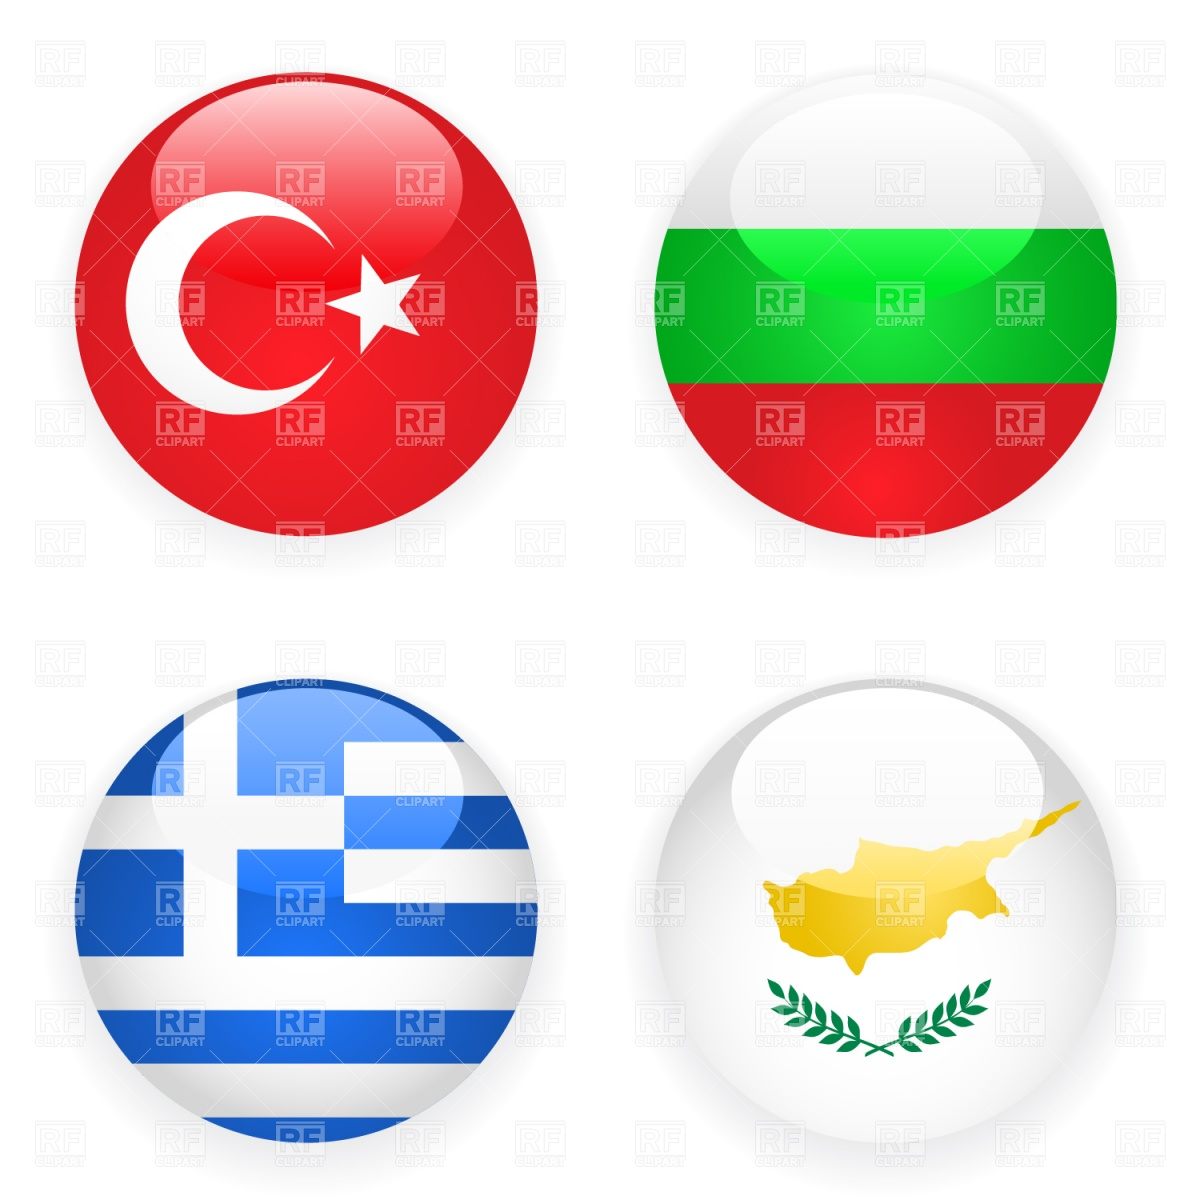 1200x1200 Turkey, Cyprus, Greece And Bulgaria Button Flags Royalty Free